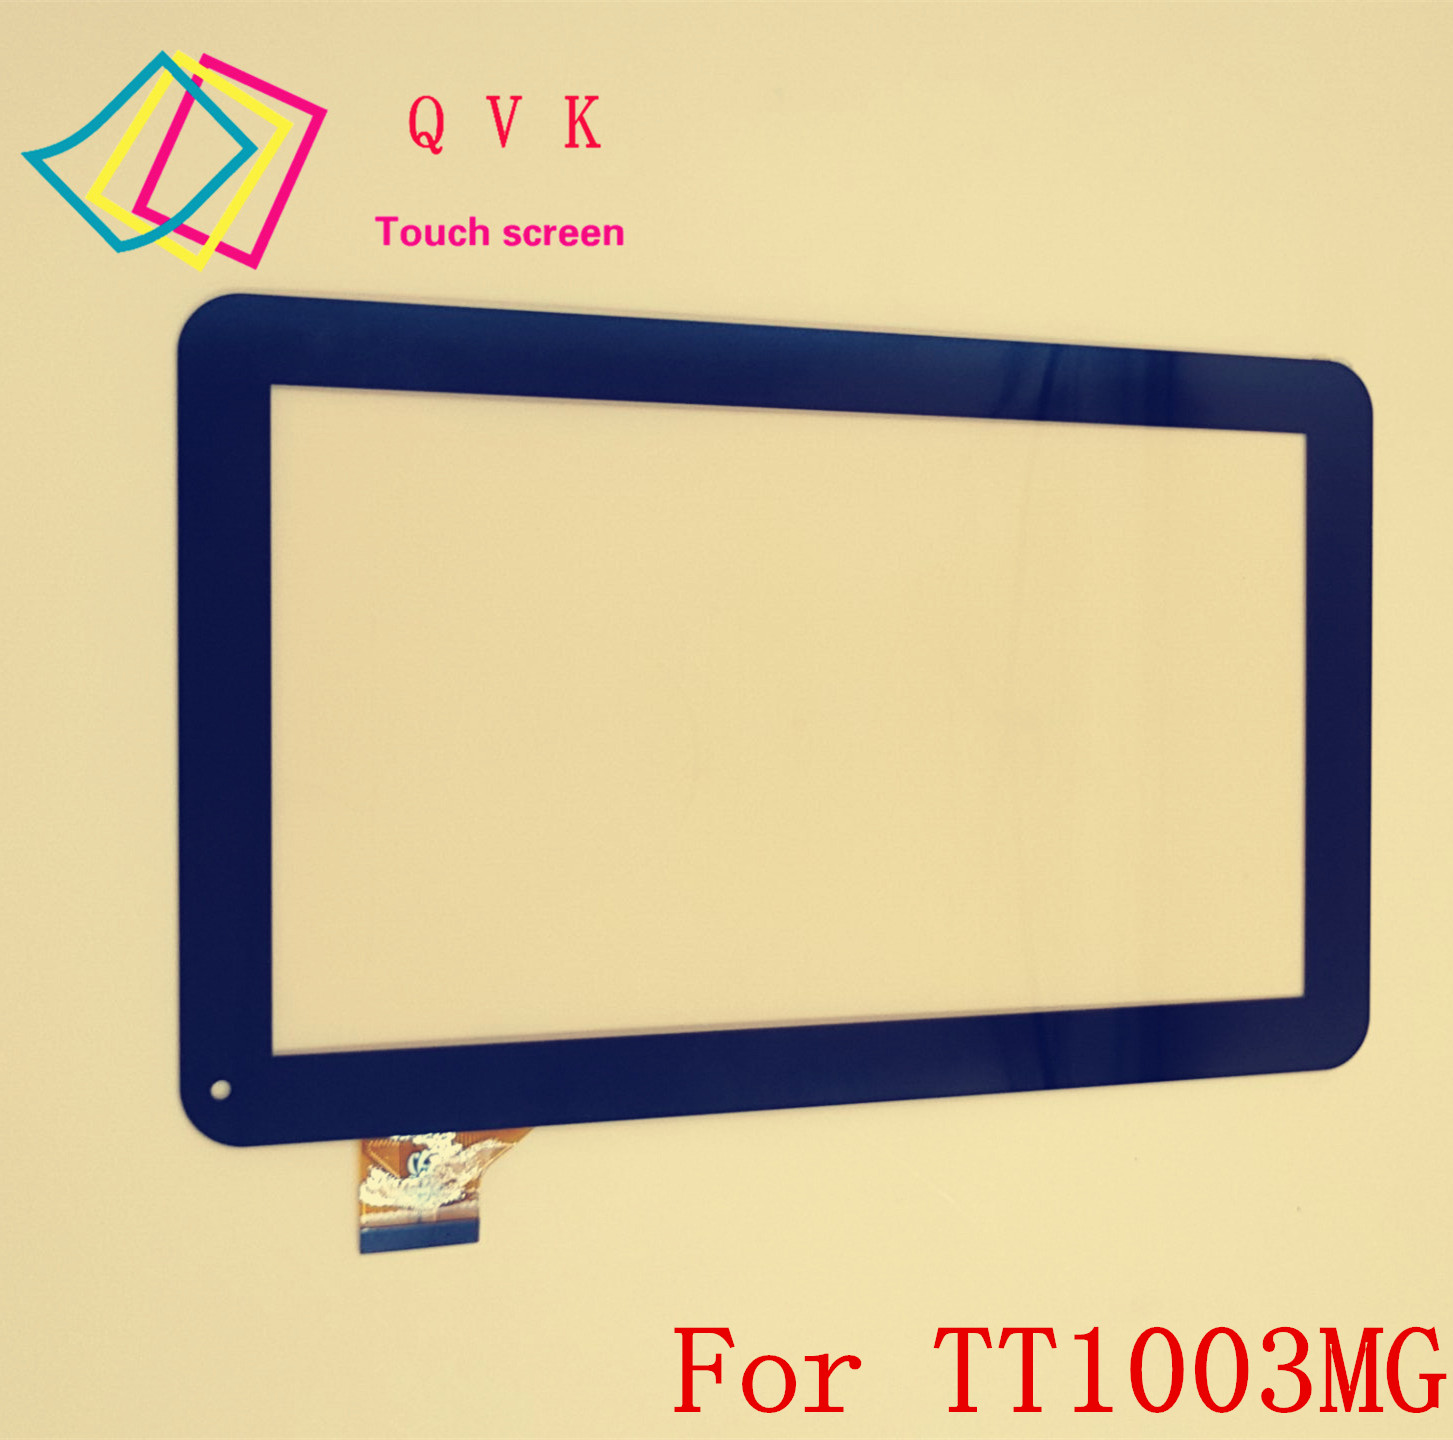 Black 10.1inch For Digma Optima 10.3 3G TT1003MG Tablet PC Touch screen panel Digitizer Glass Sensor replacement Free Shipping new for 5 qumo quest 503 capacitive touch screen touch panel digitizer glass sensor replacement free shipping